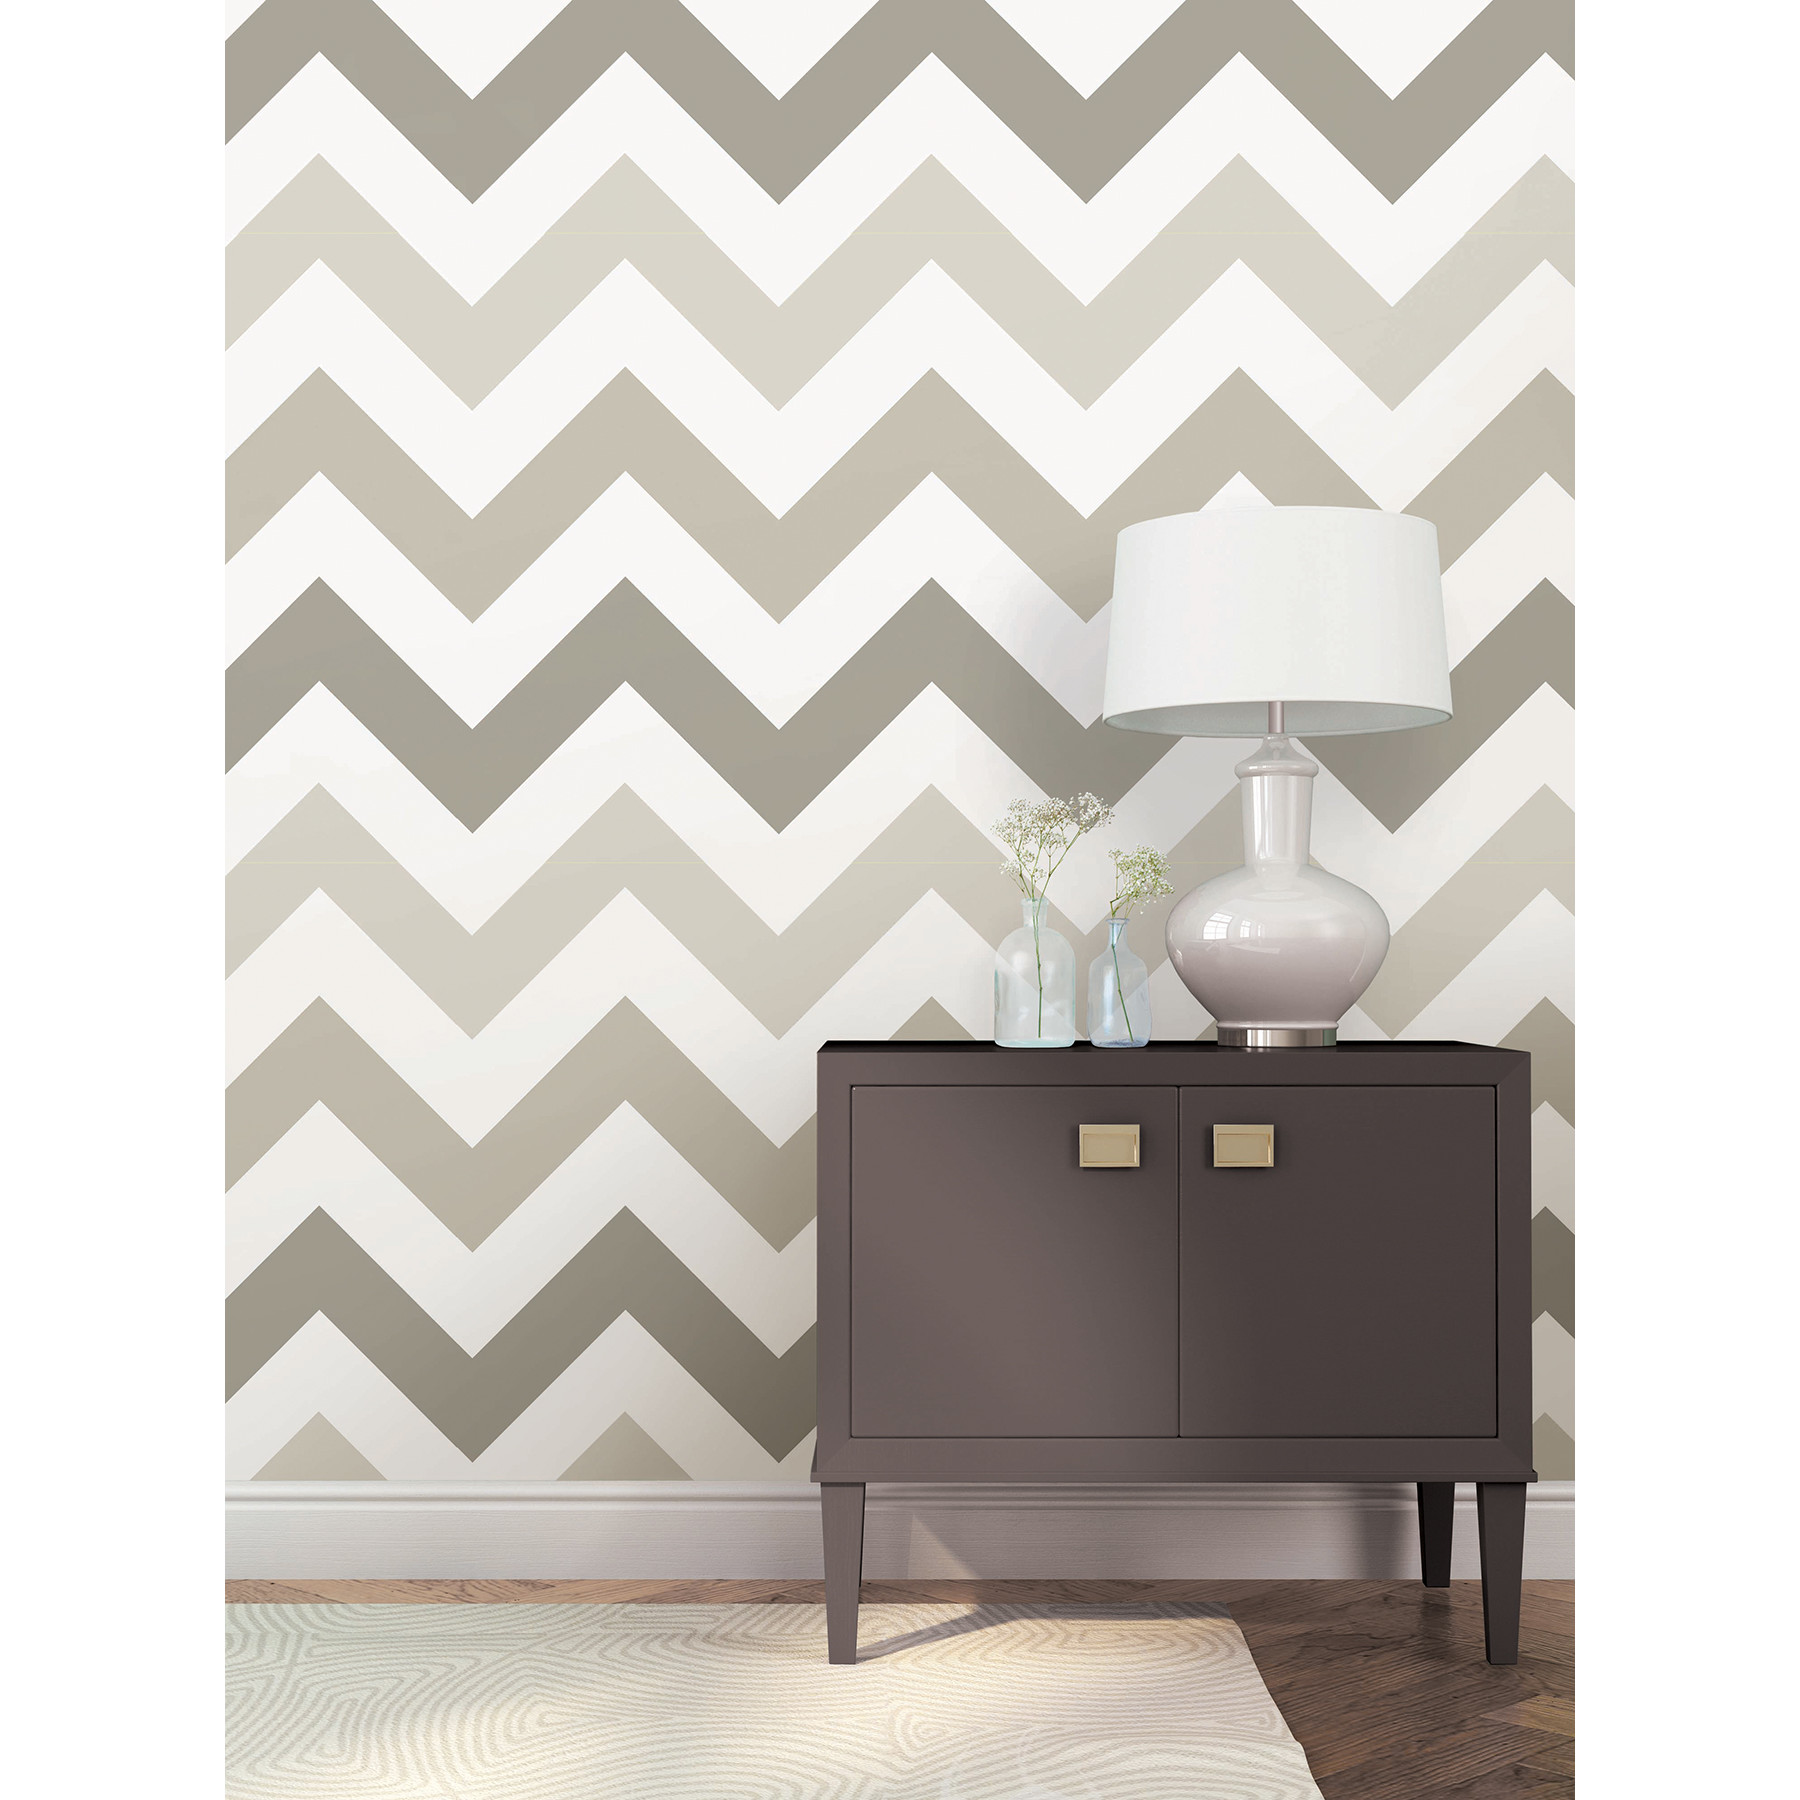 WallPops Taupe Zig Zag Peel And Stick Wallpaper Reviews Wayfair 1800x1800